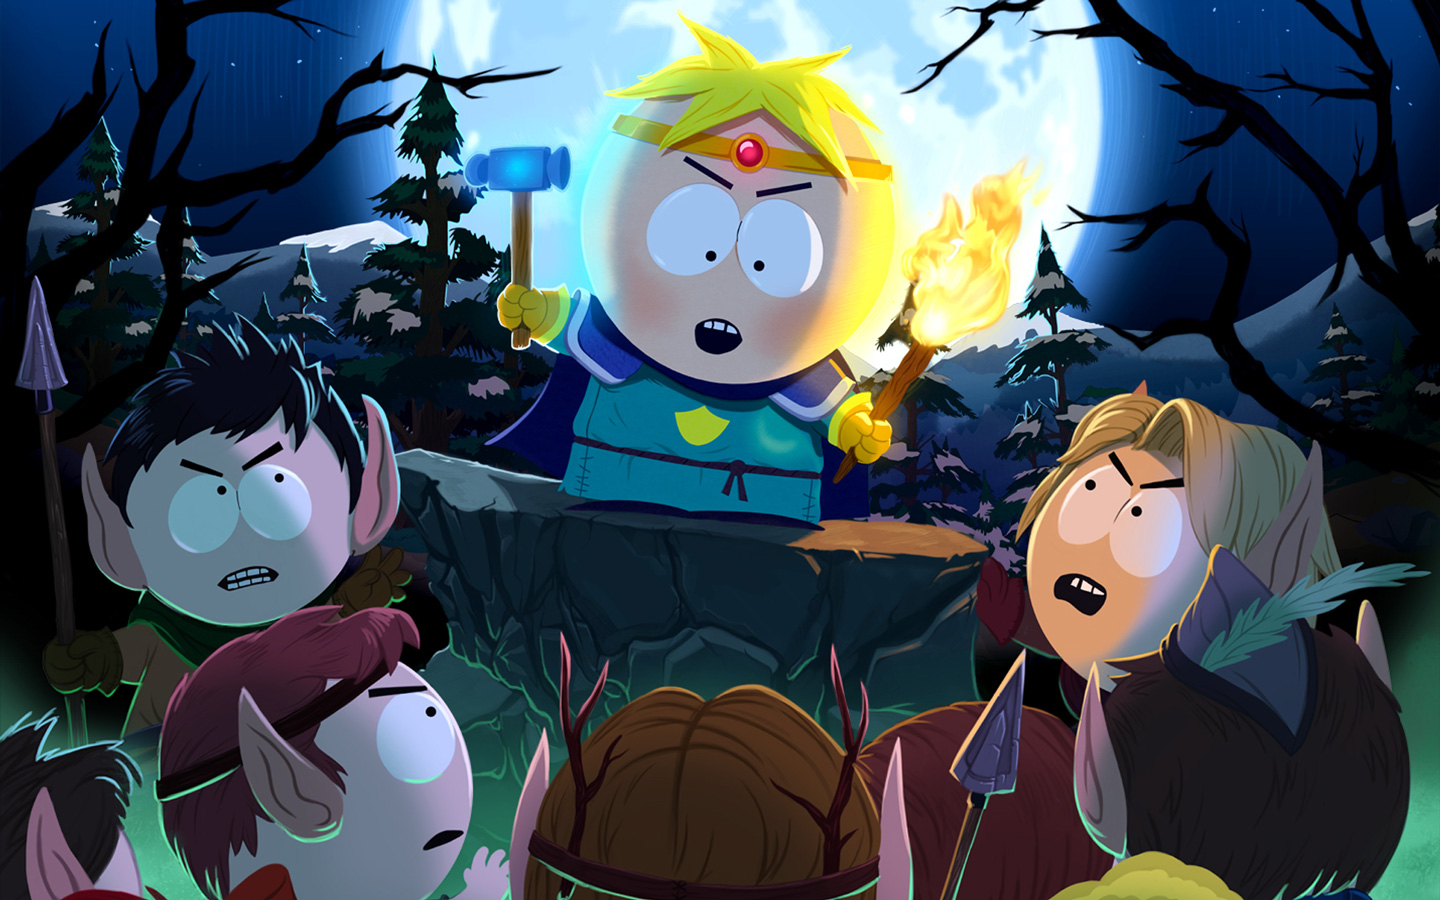 South Park: The Stick of Truth Wallpaper in 1440x900